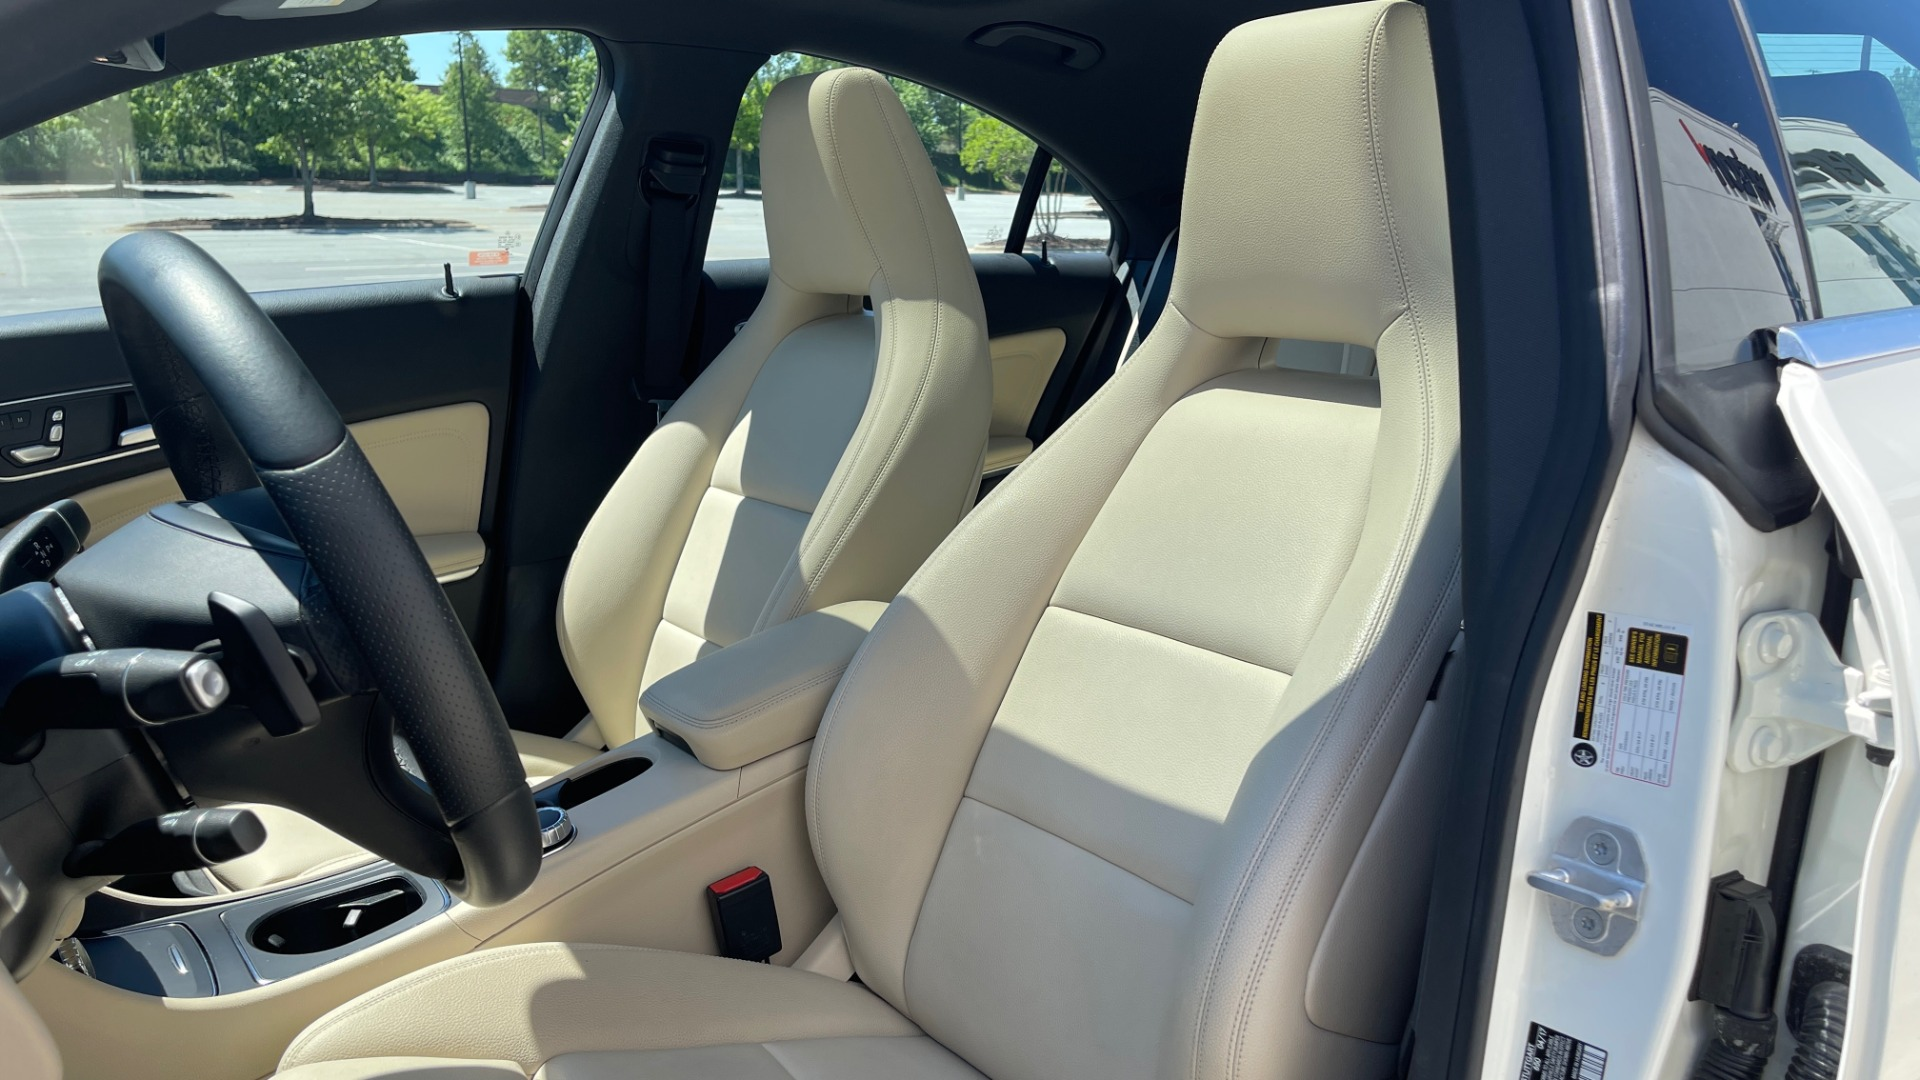 Used 2018 Mercedes-Benz CLA 250 PREMIUM / CONV PKG / APPLE / PANO-ROOF / REARVIEW for sale $29,795 at Formula Imports in Charlotte NC 28227 30